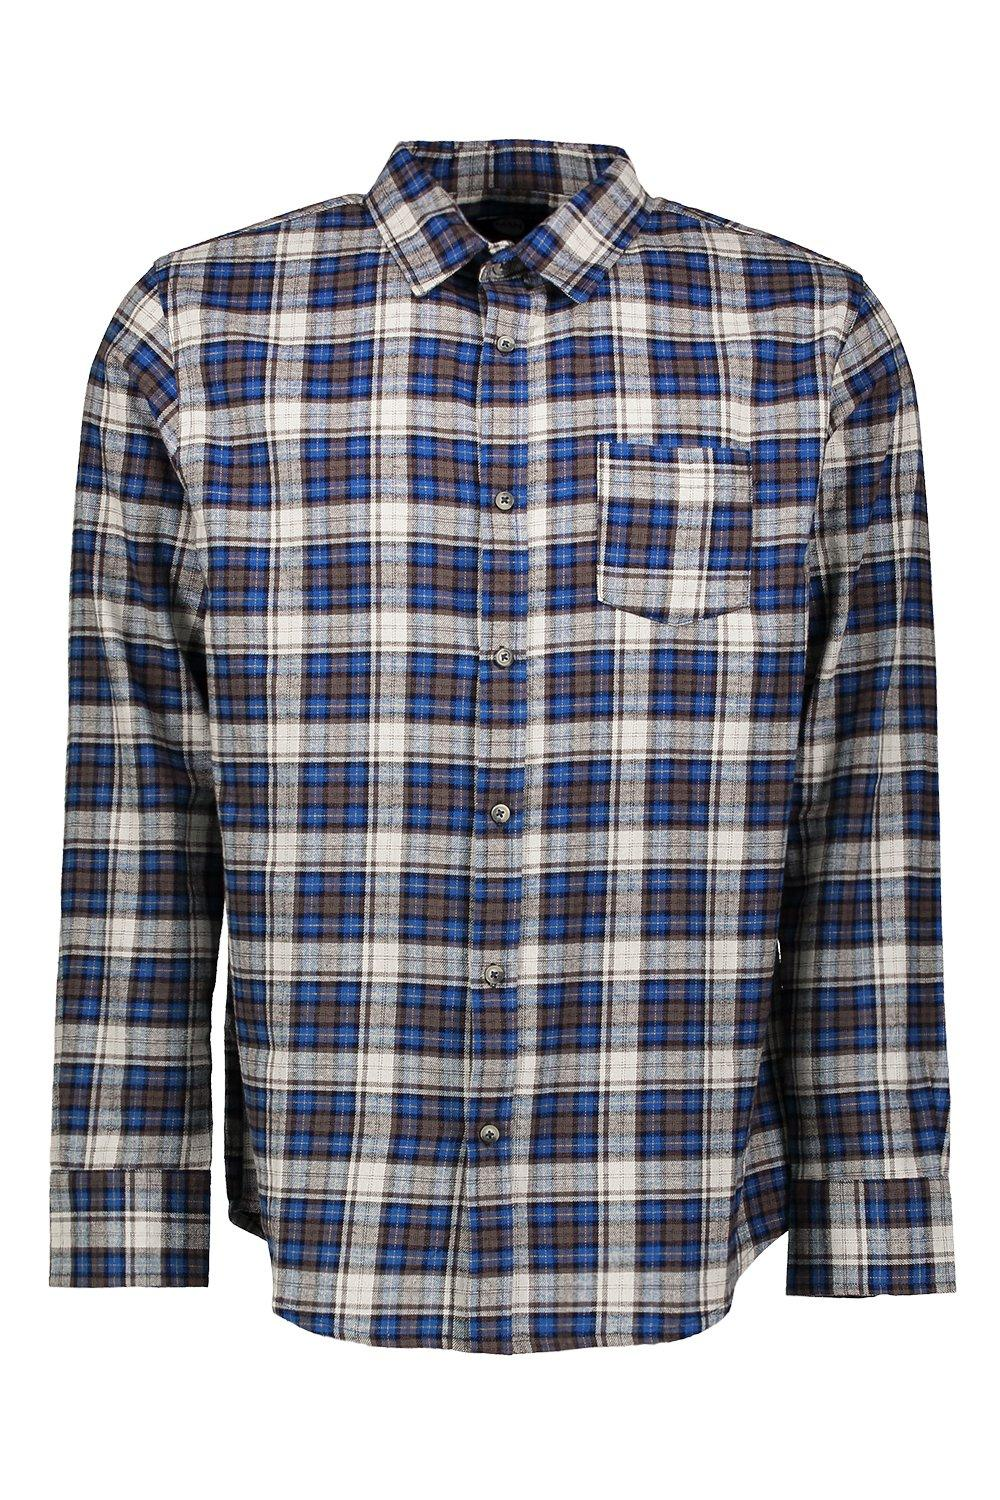 boohooMAN Long Sleeve Navy Buffalo Check Shirt